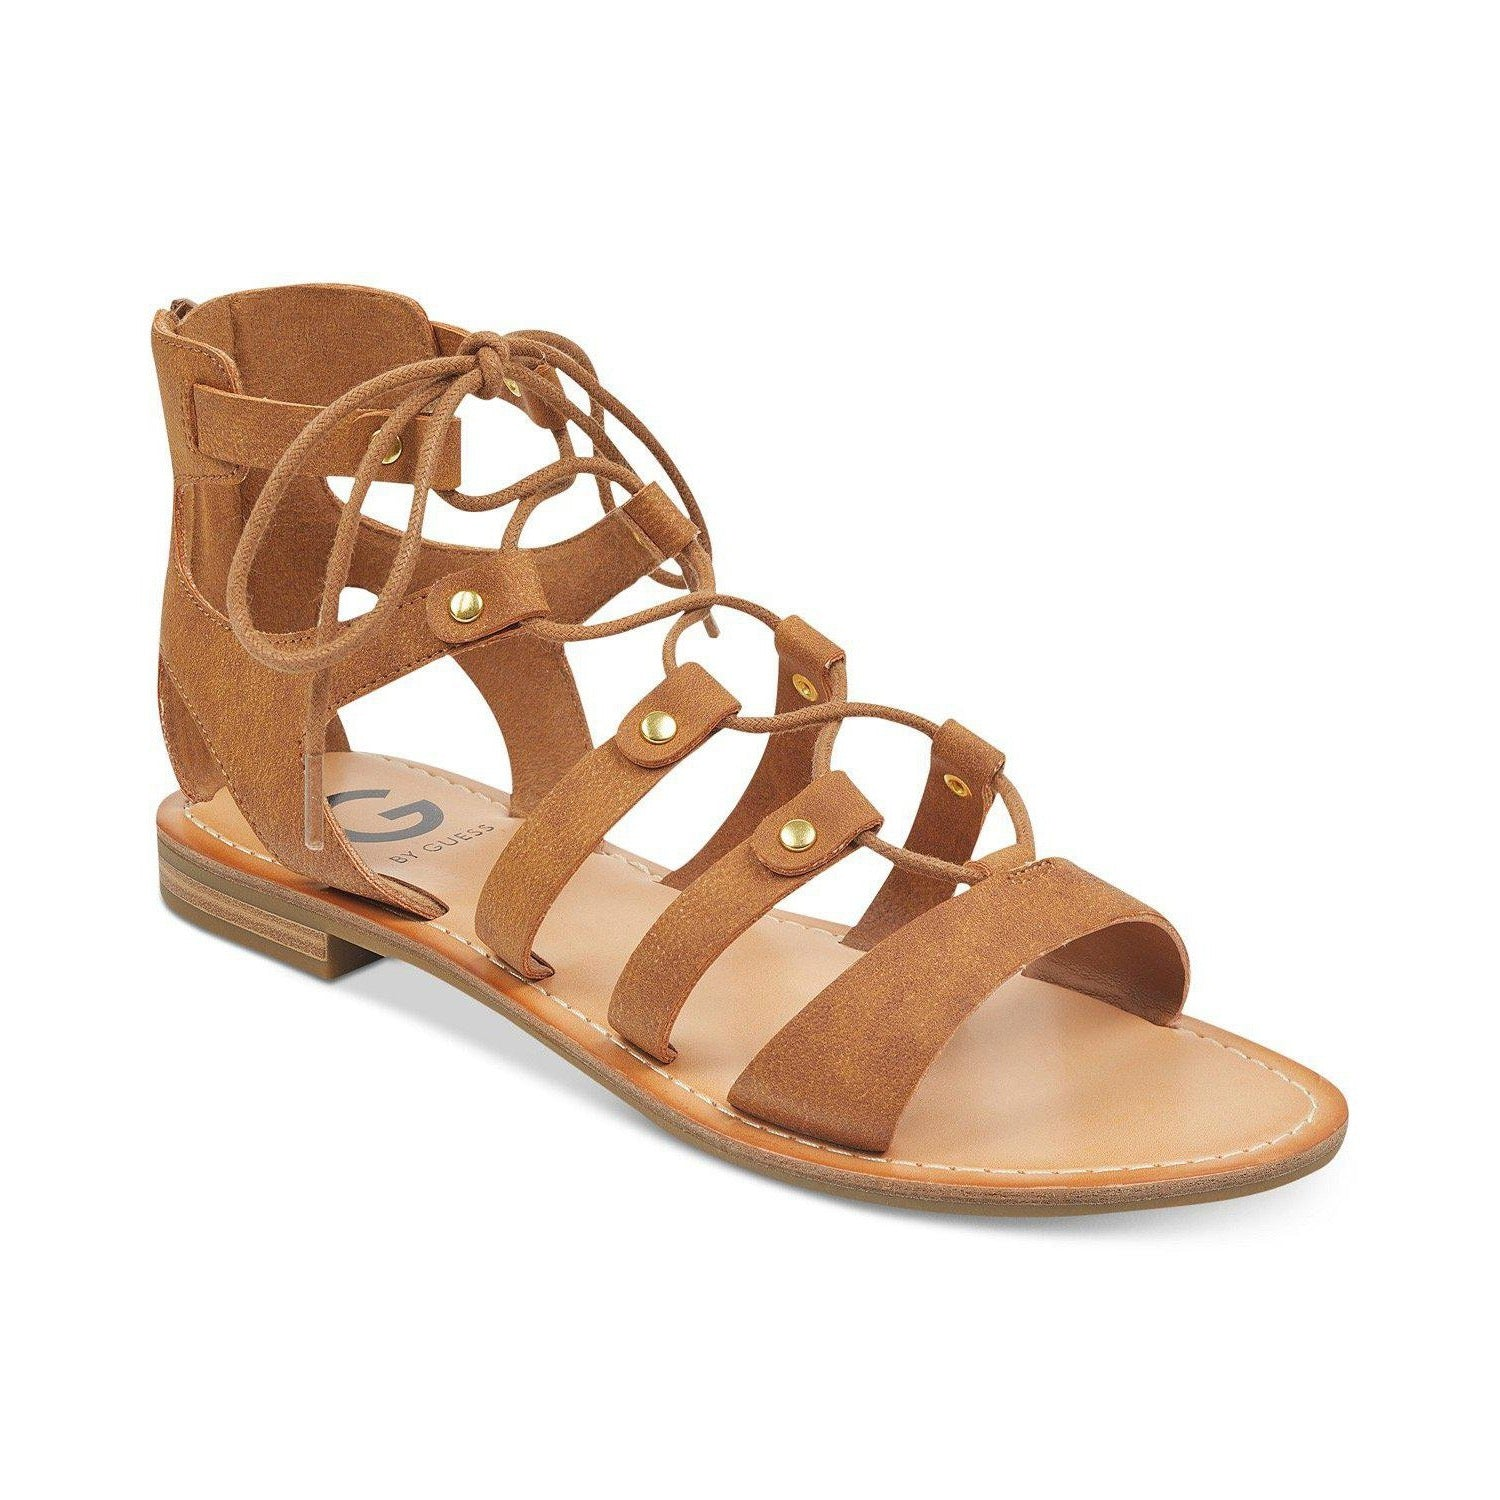 Hotsy Open Toe Gladiator Sandals